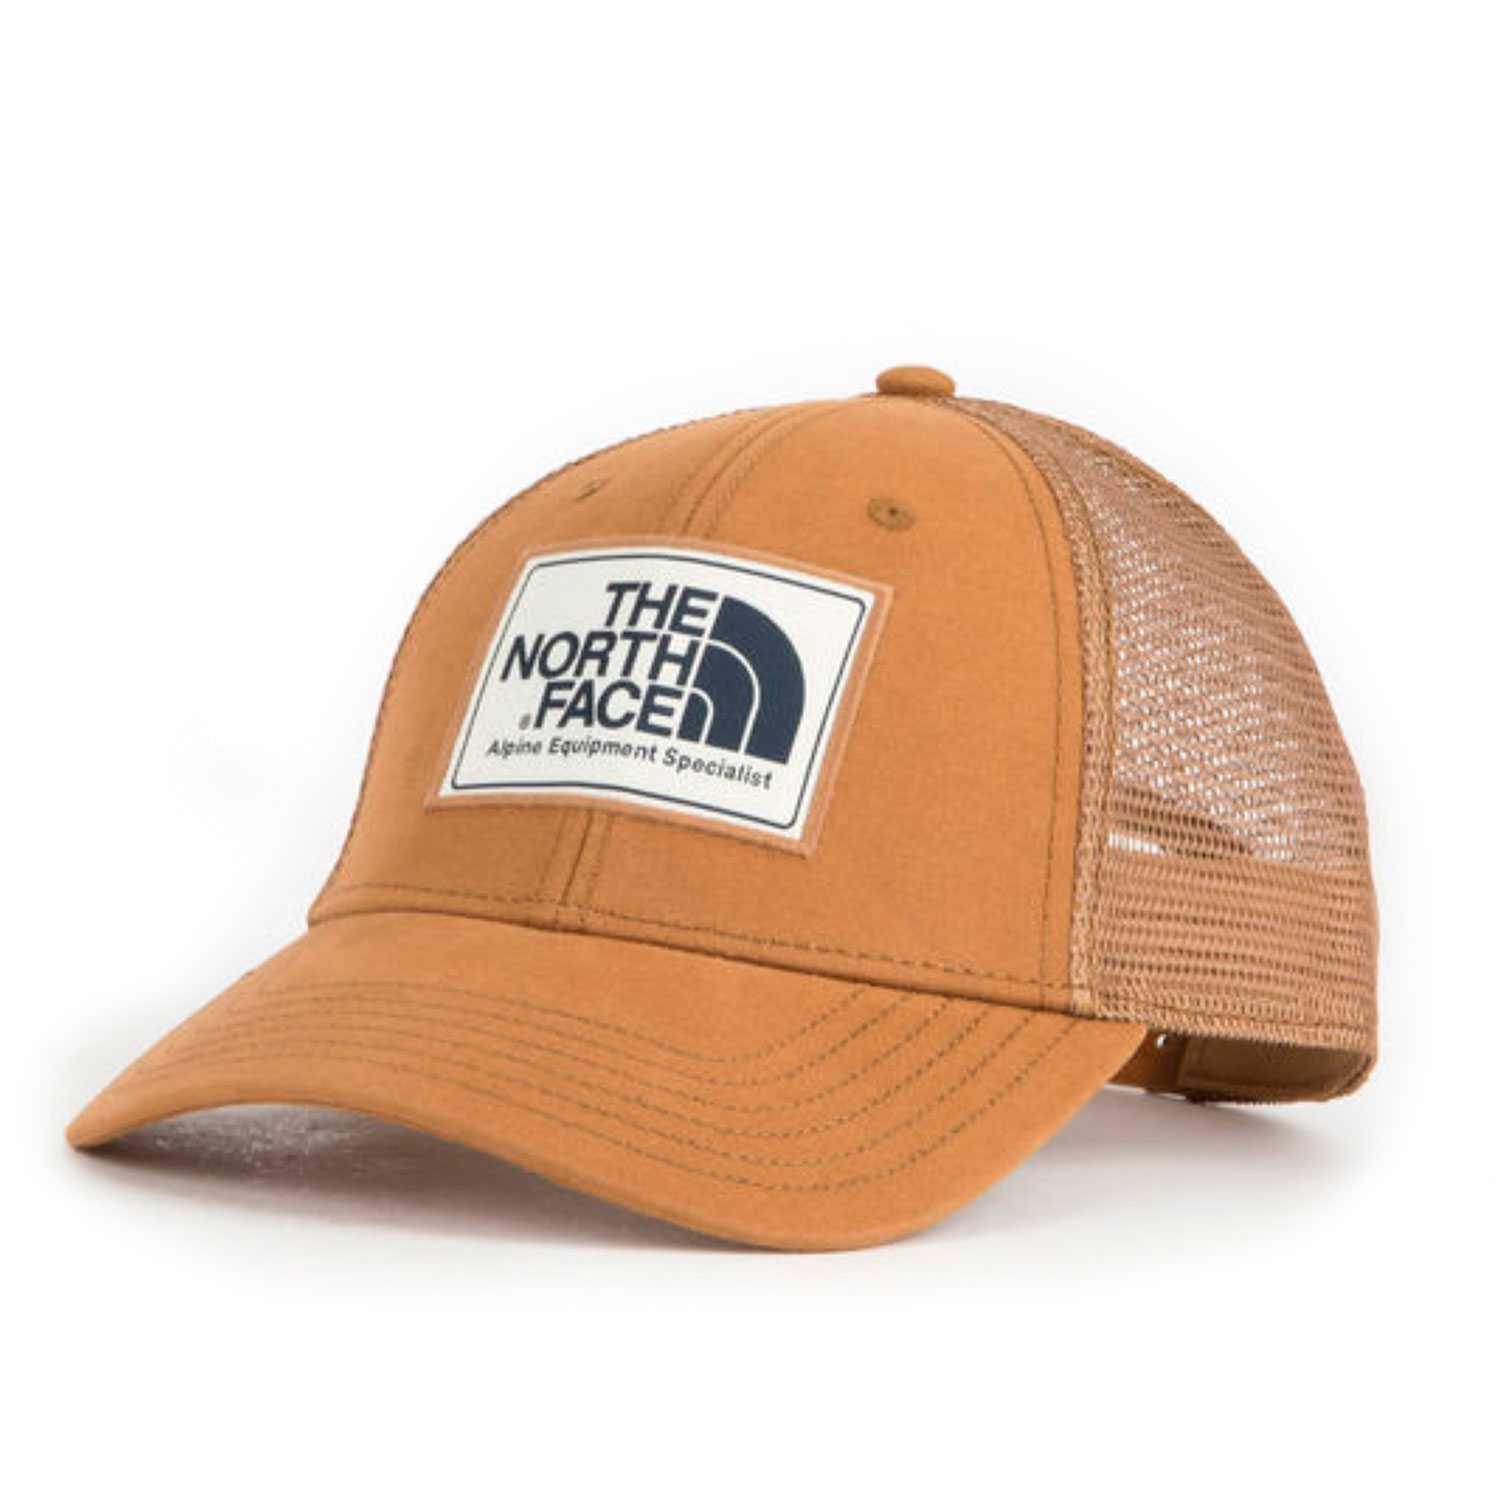 The North Face mudder trucker hat Mosta Gorros de Baseball